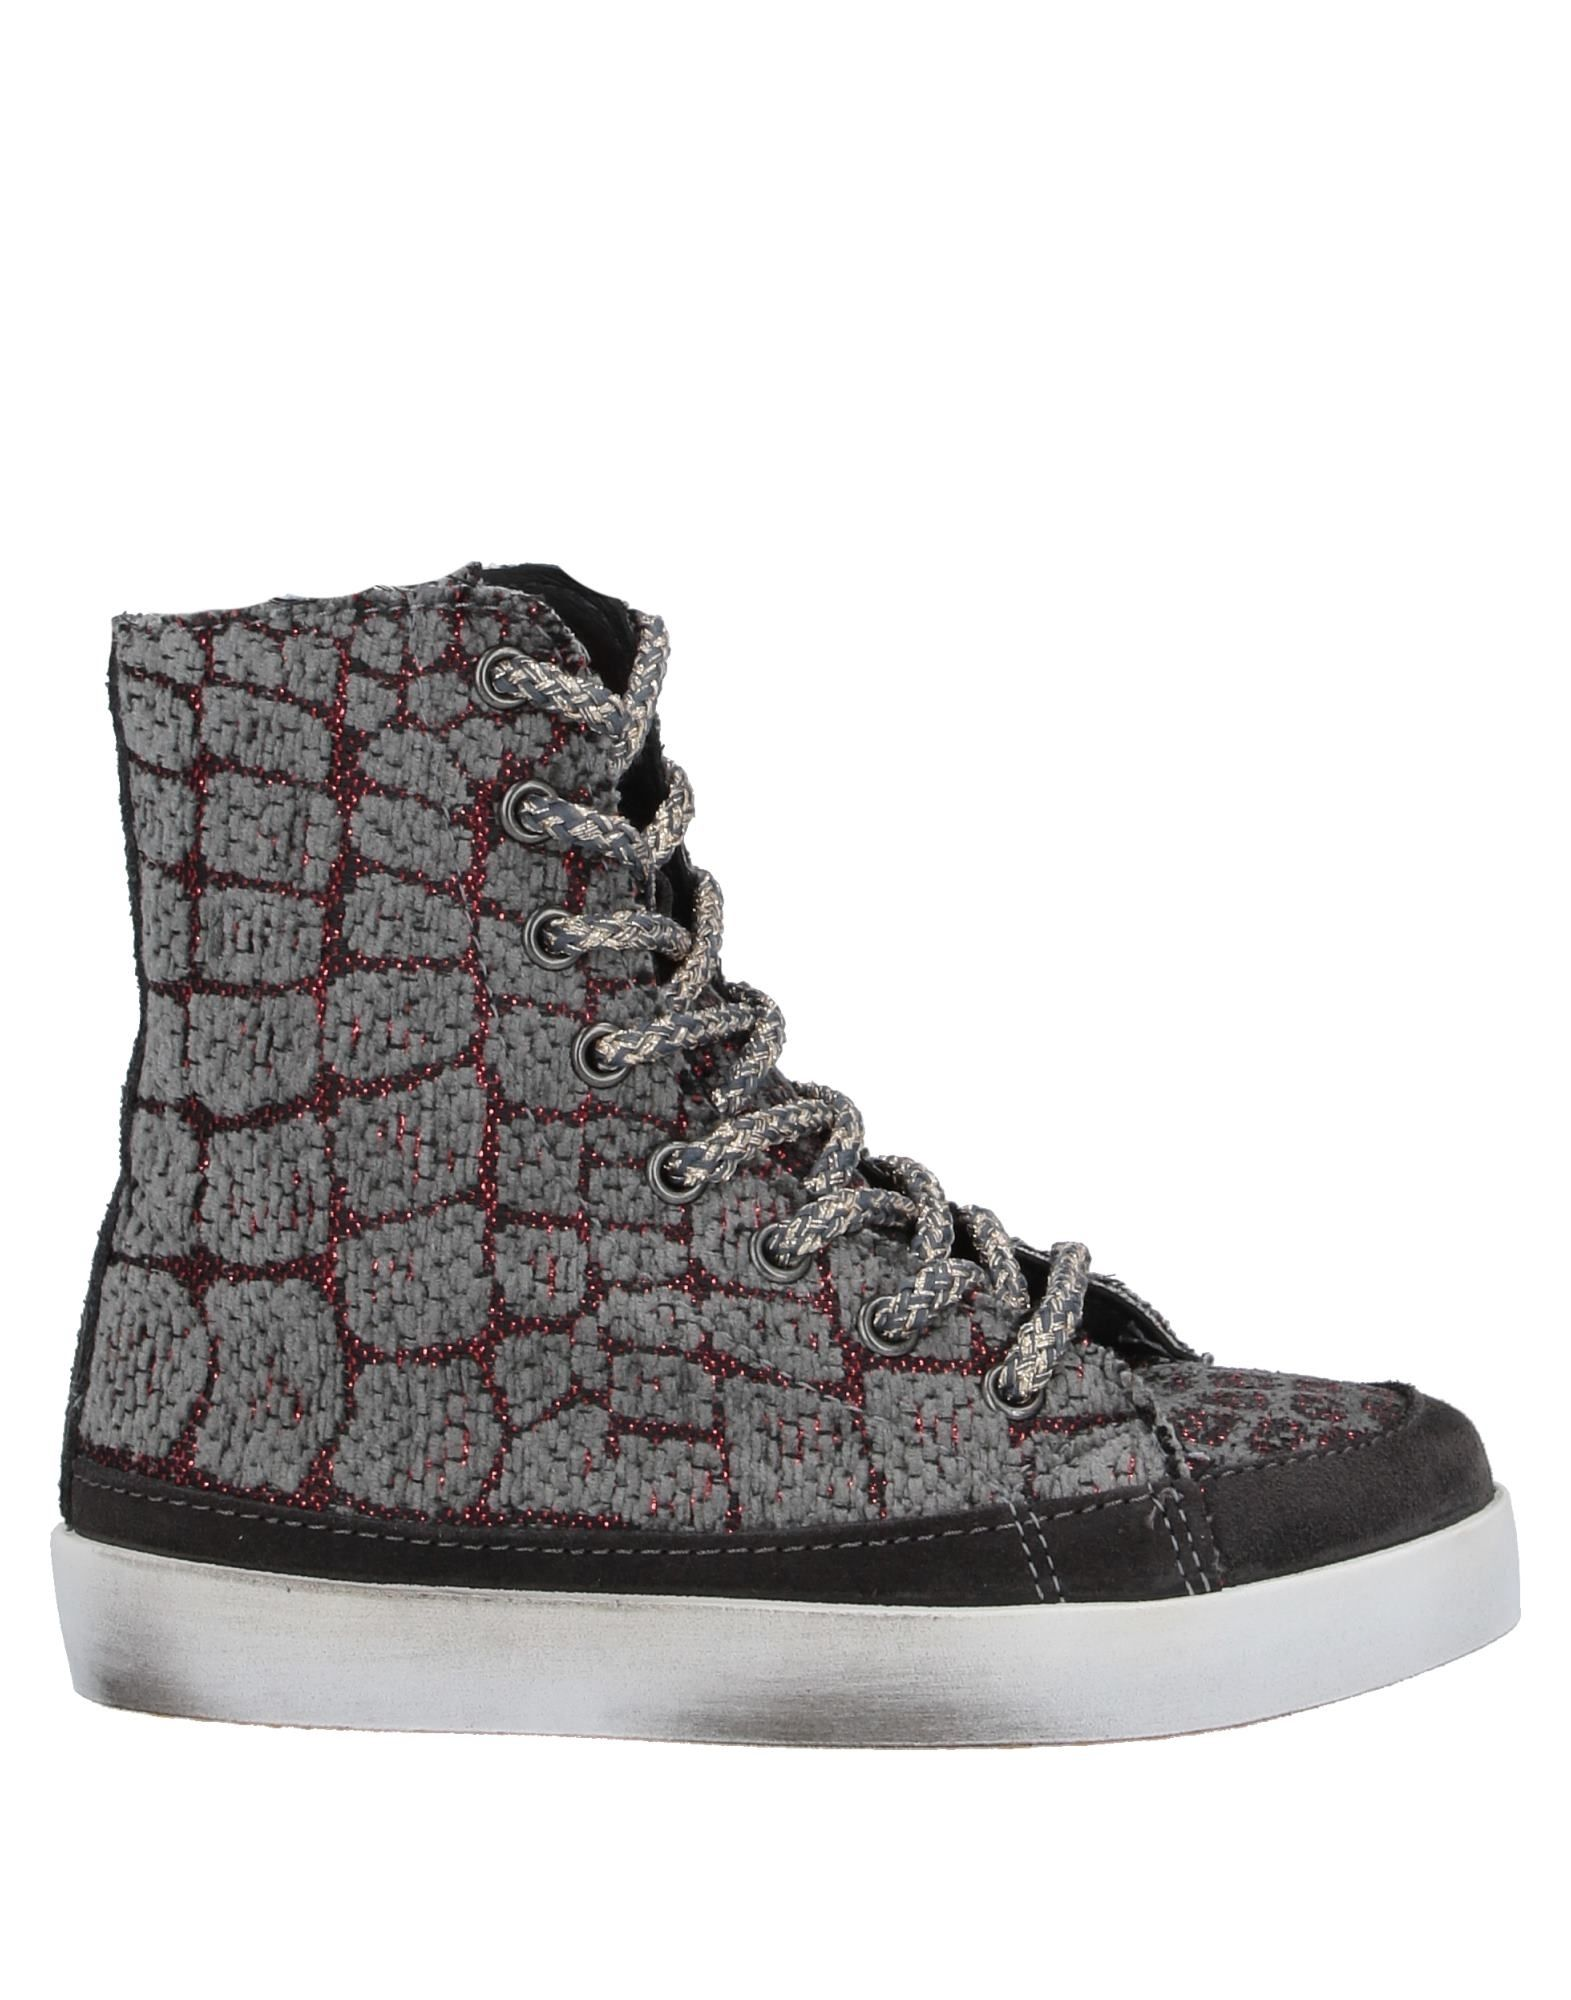 2STAR | 2STAR High-Tops & Sneakers 11716971 | Goxip